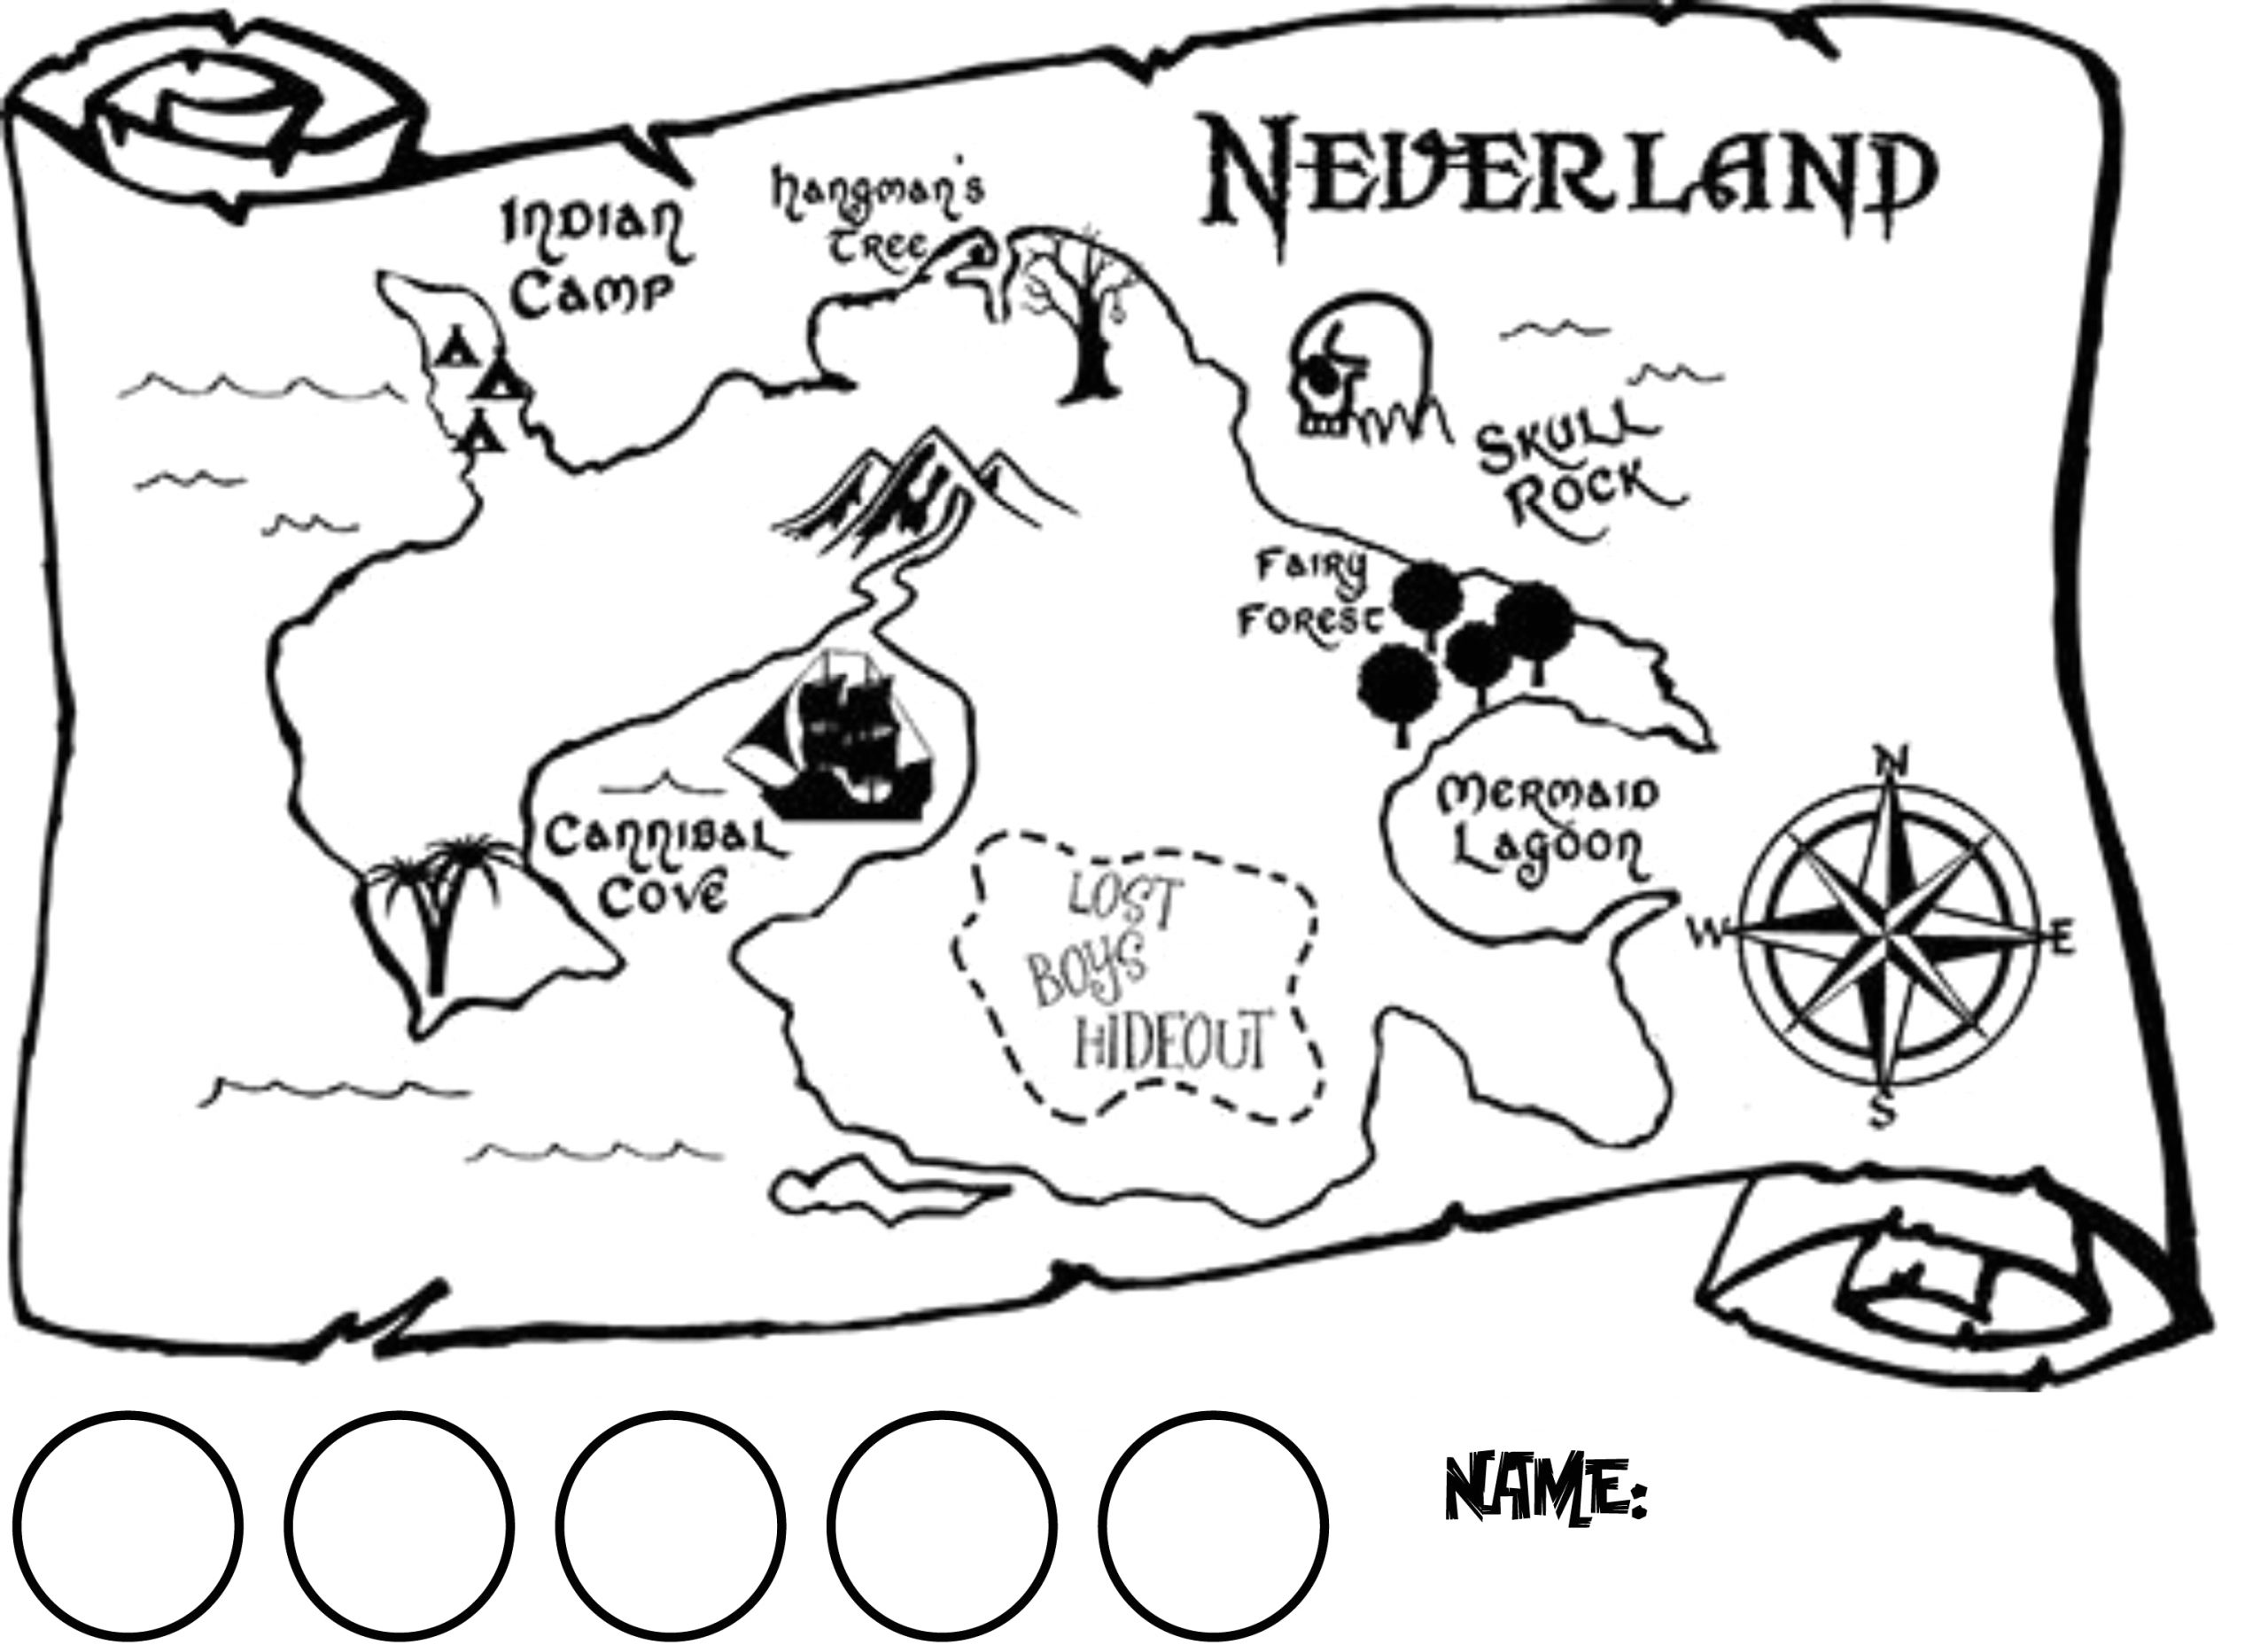 Jake and the Neverland Pirates Treasure Map Coloring Page Horizontal Map Of Neverland with Circles for Collecting 1